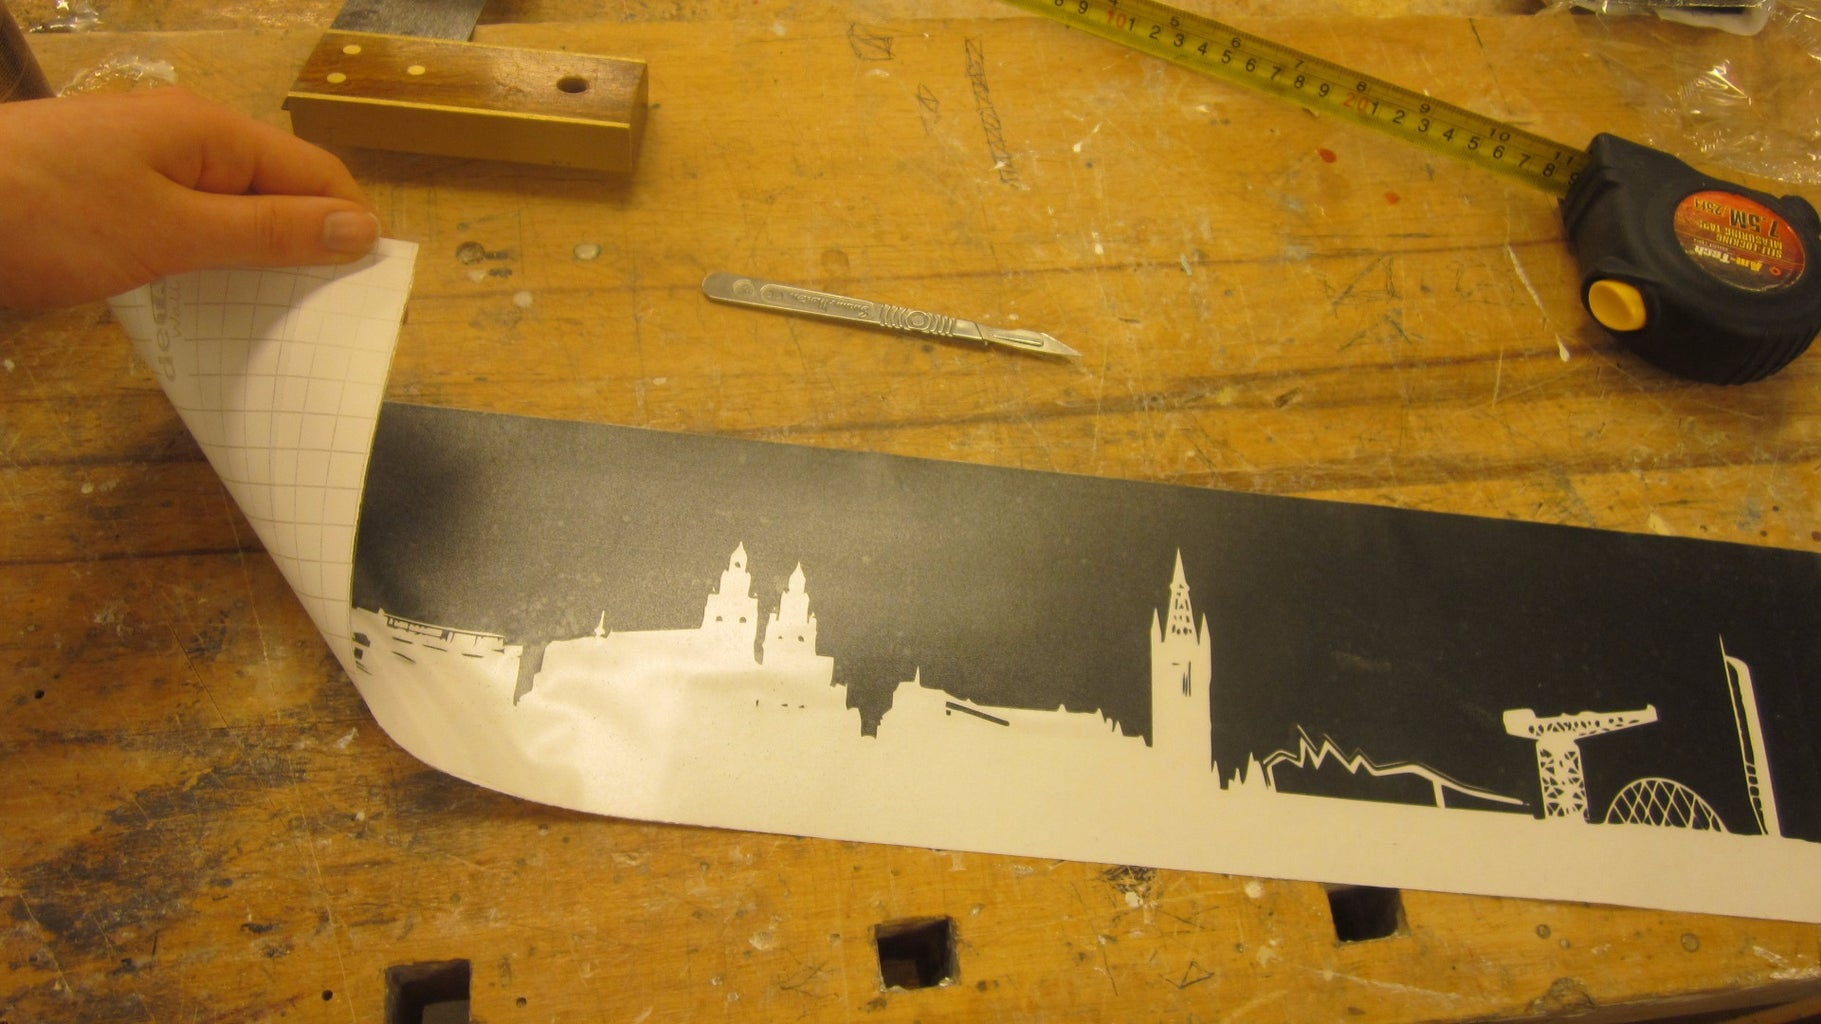 Cutting and Placing the Stencil